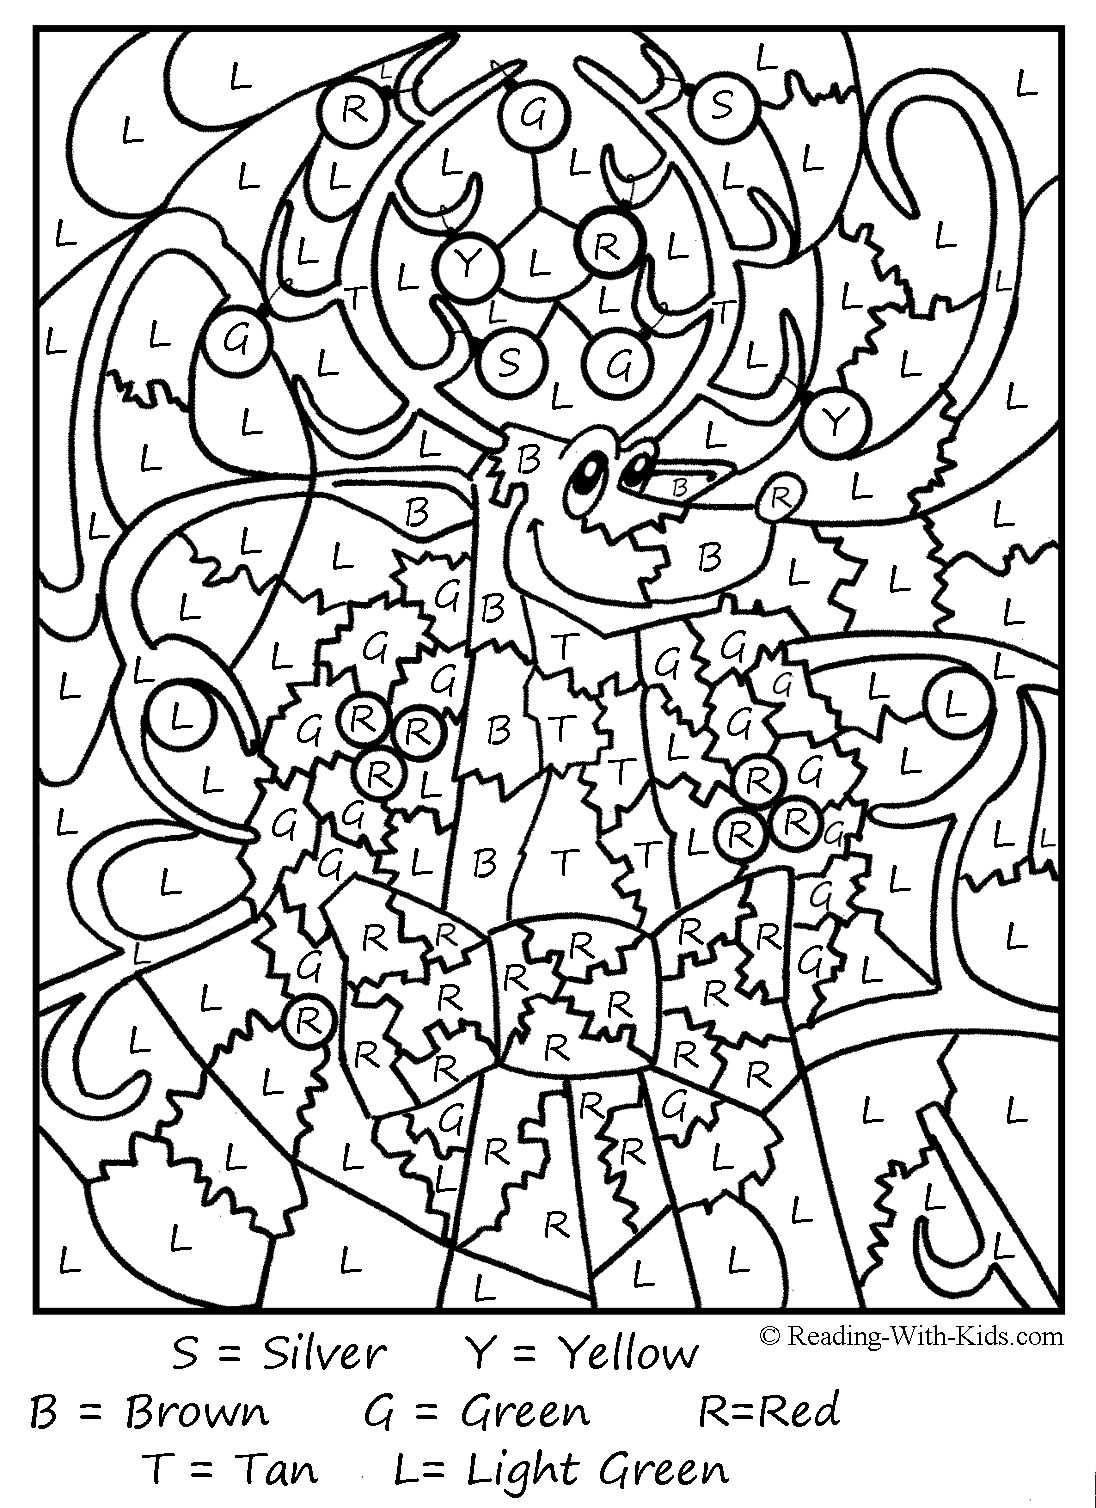 Christmas Coloring Sheets For Elementary With Free Printable Activity Pages